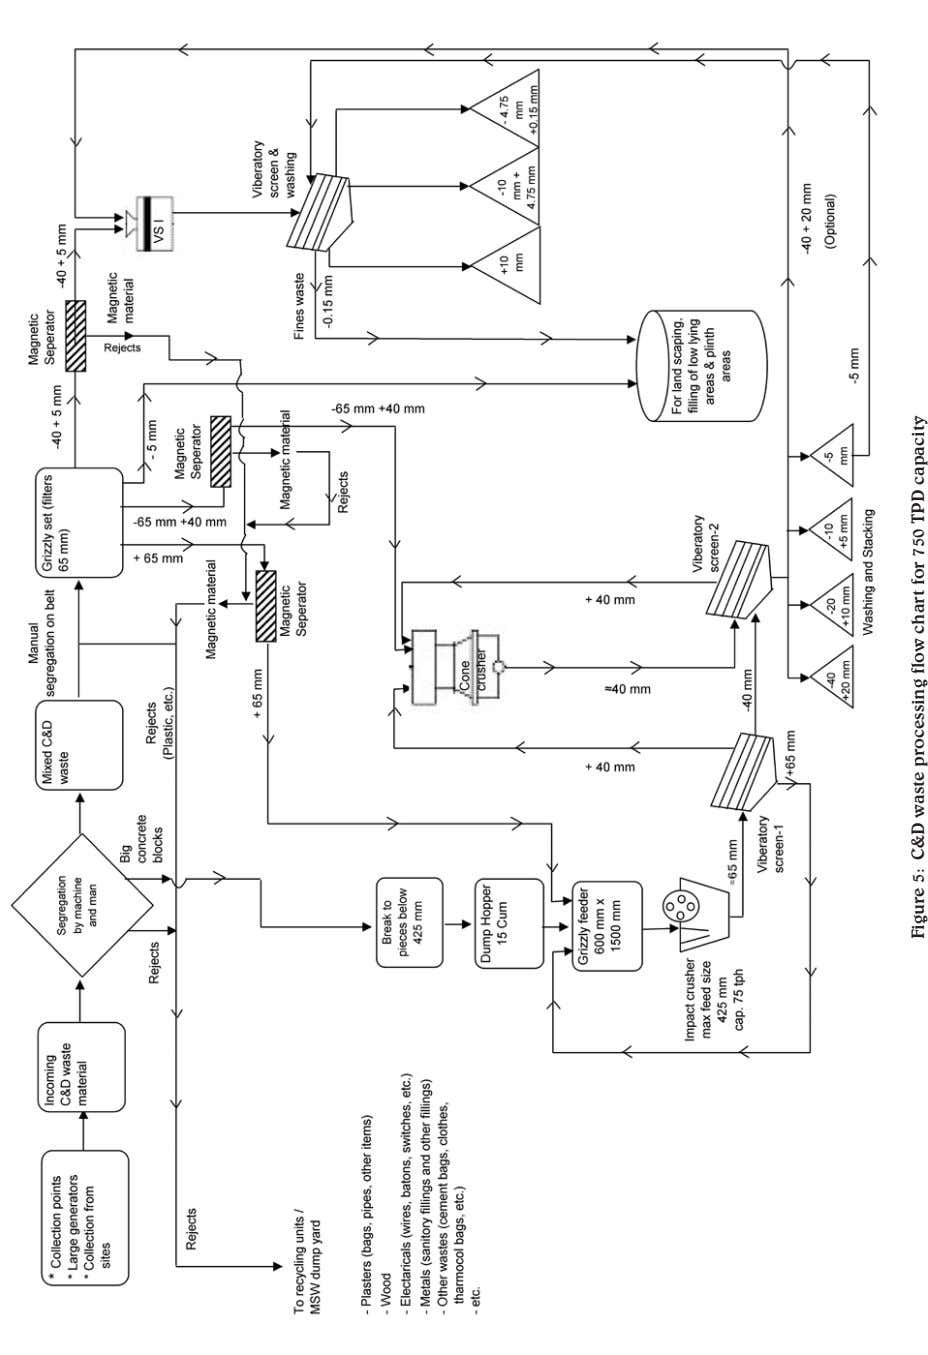 Figure 5: C&D waste processing flow chart for 750 TPD capacity